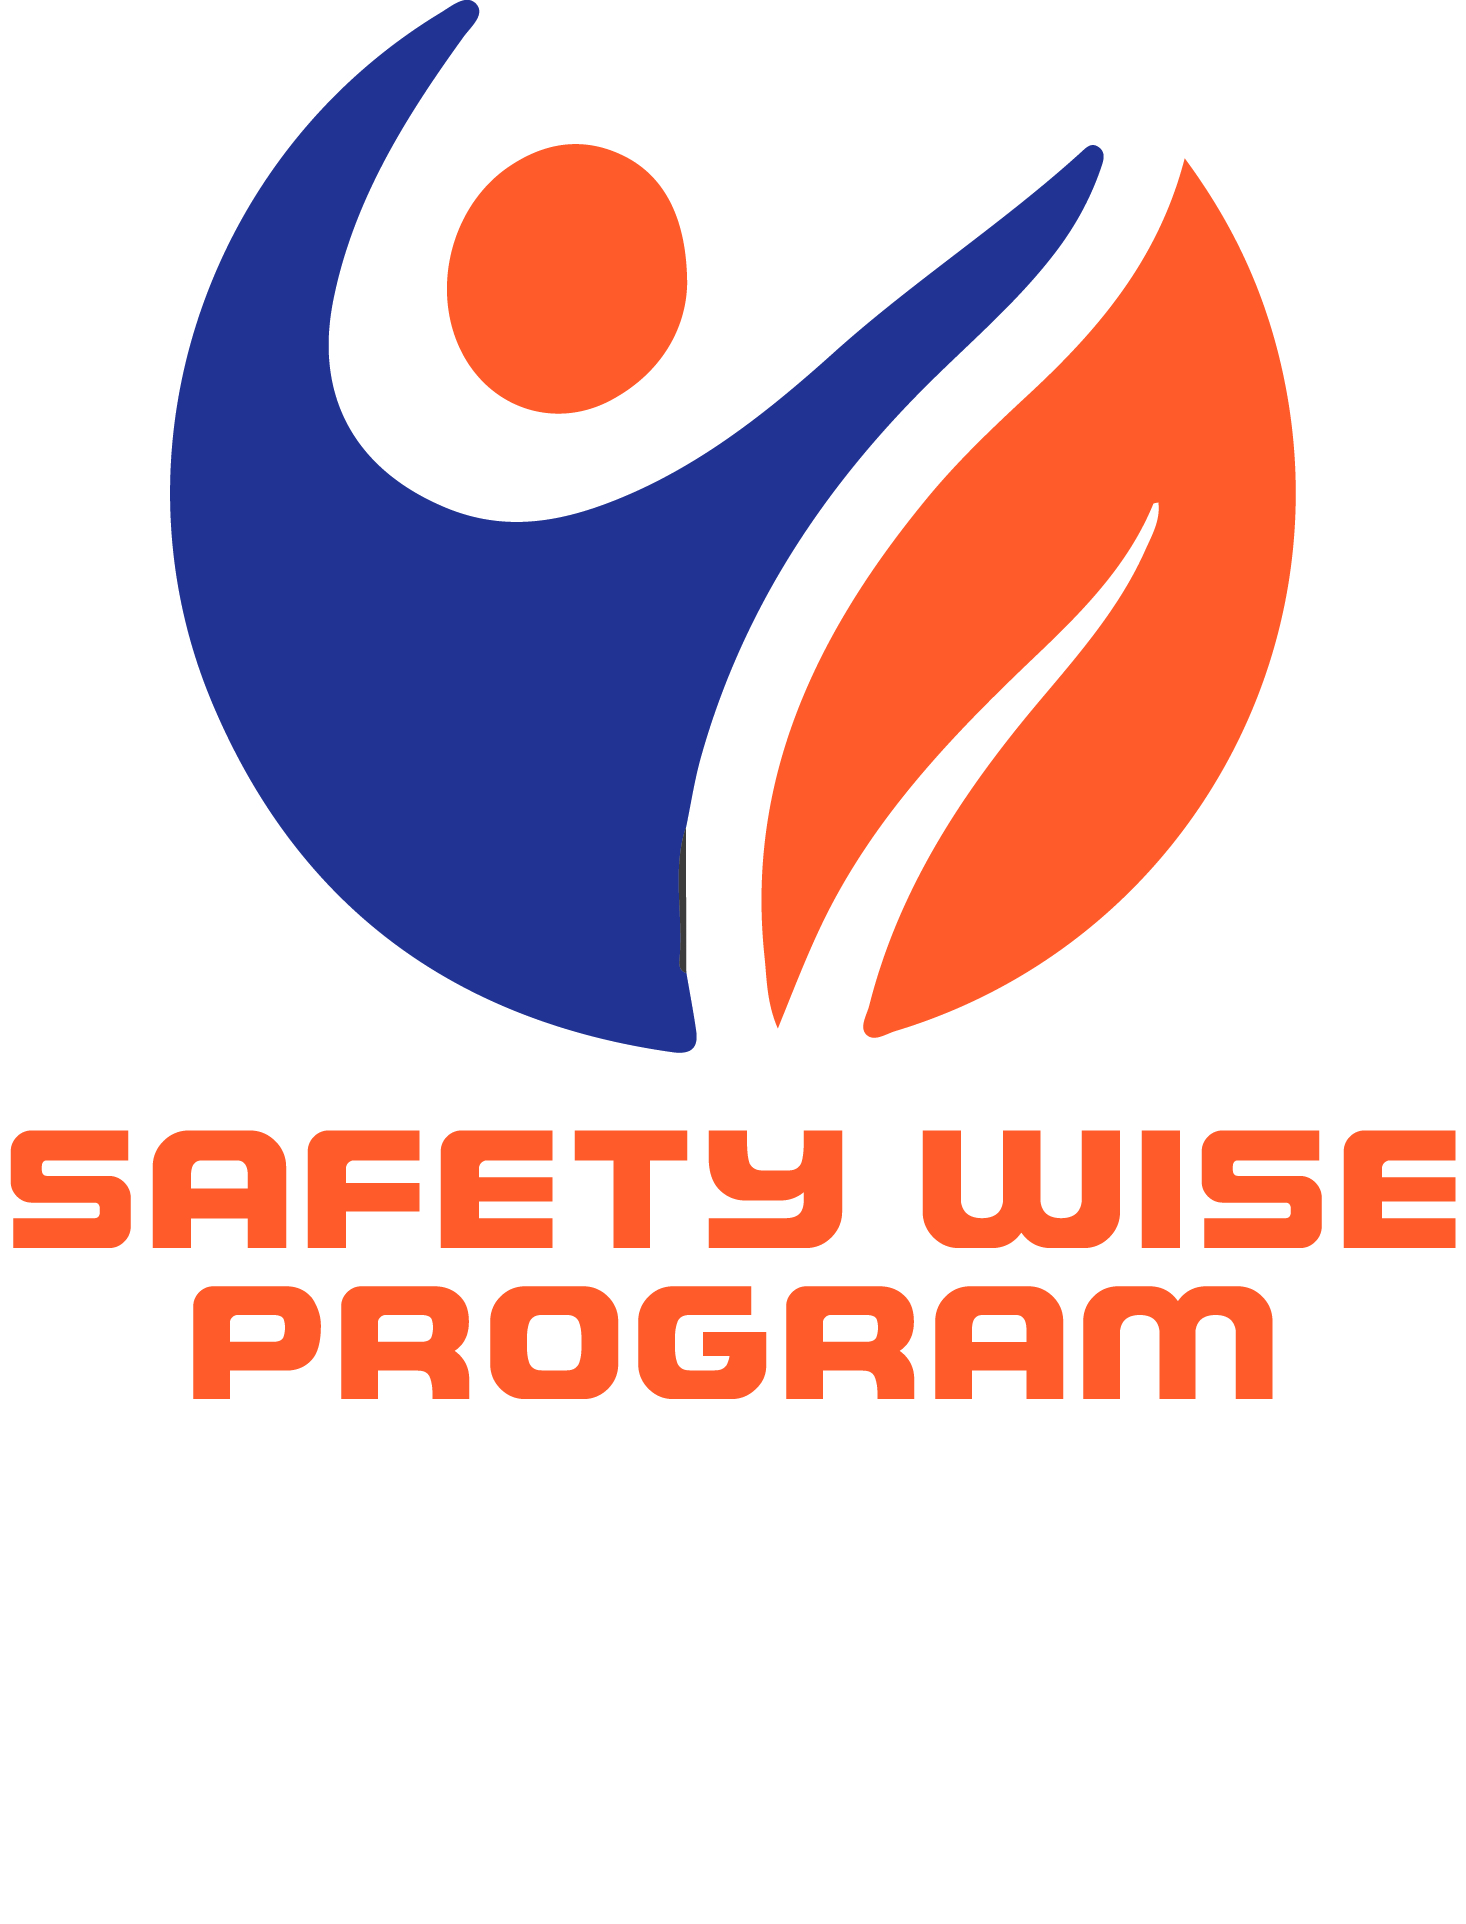 Logo Design by Anum Aamir - Entry No. 88 in the Logo Design Contest New Logo Design for Safety Wise Program.